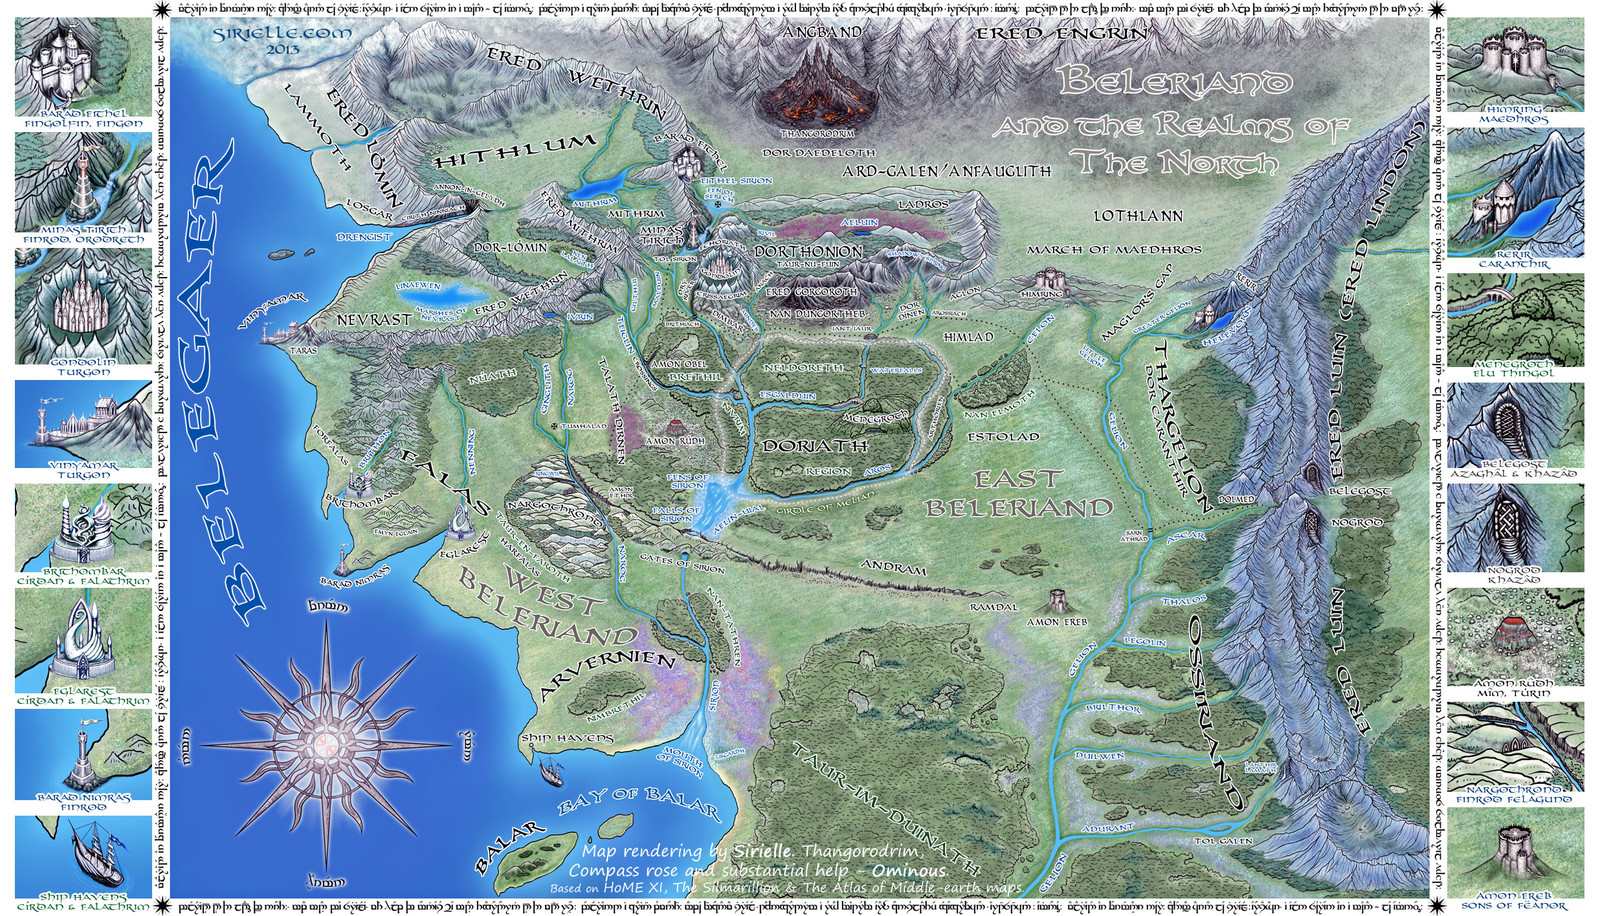 Beleriand and Realms of The North | Map rendering by myself, with Thangorodrim, compass rose and tengwar frame by Kuba Tymiński 'Ominous'.